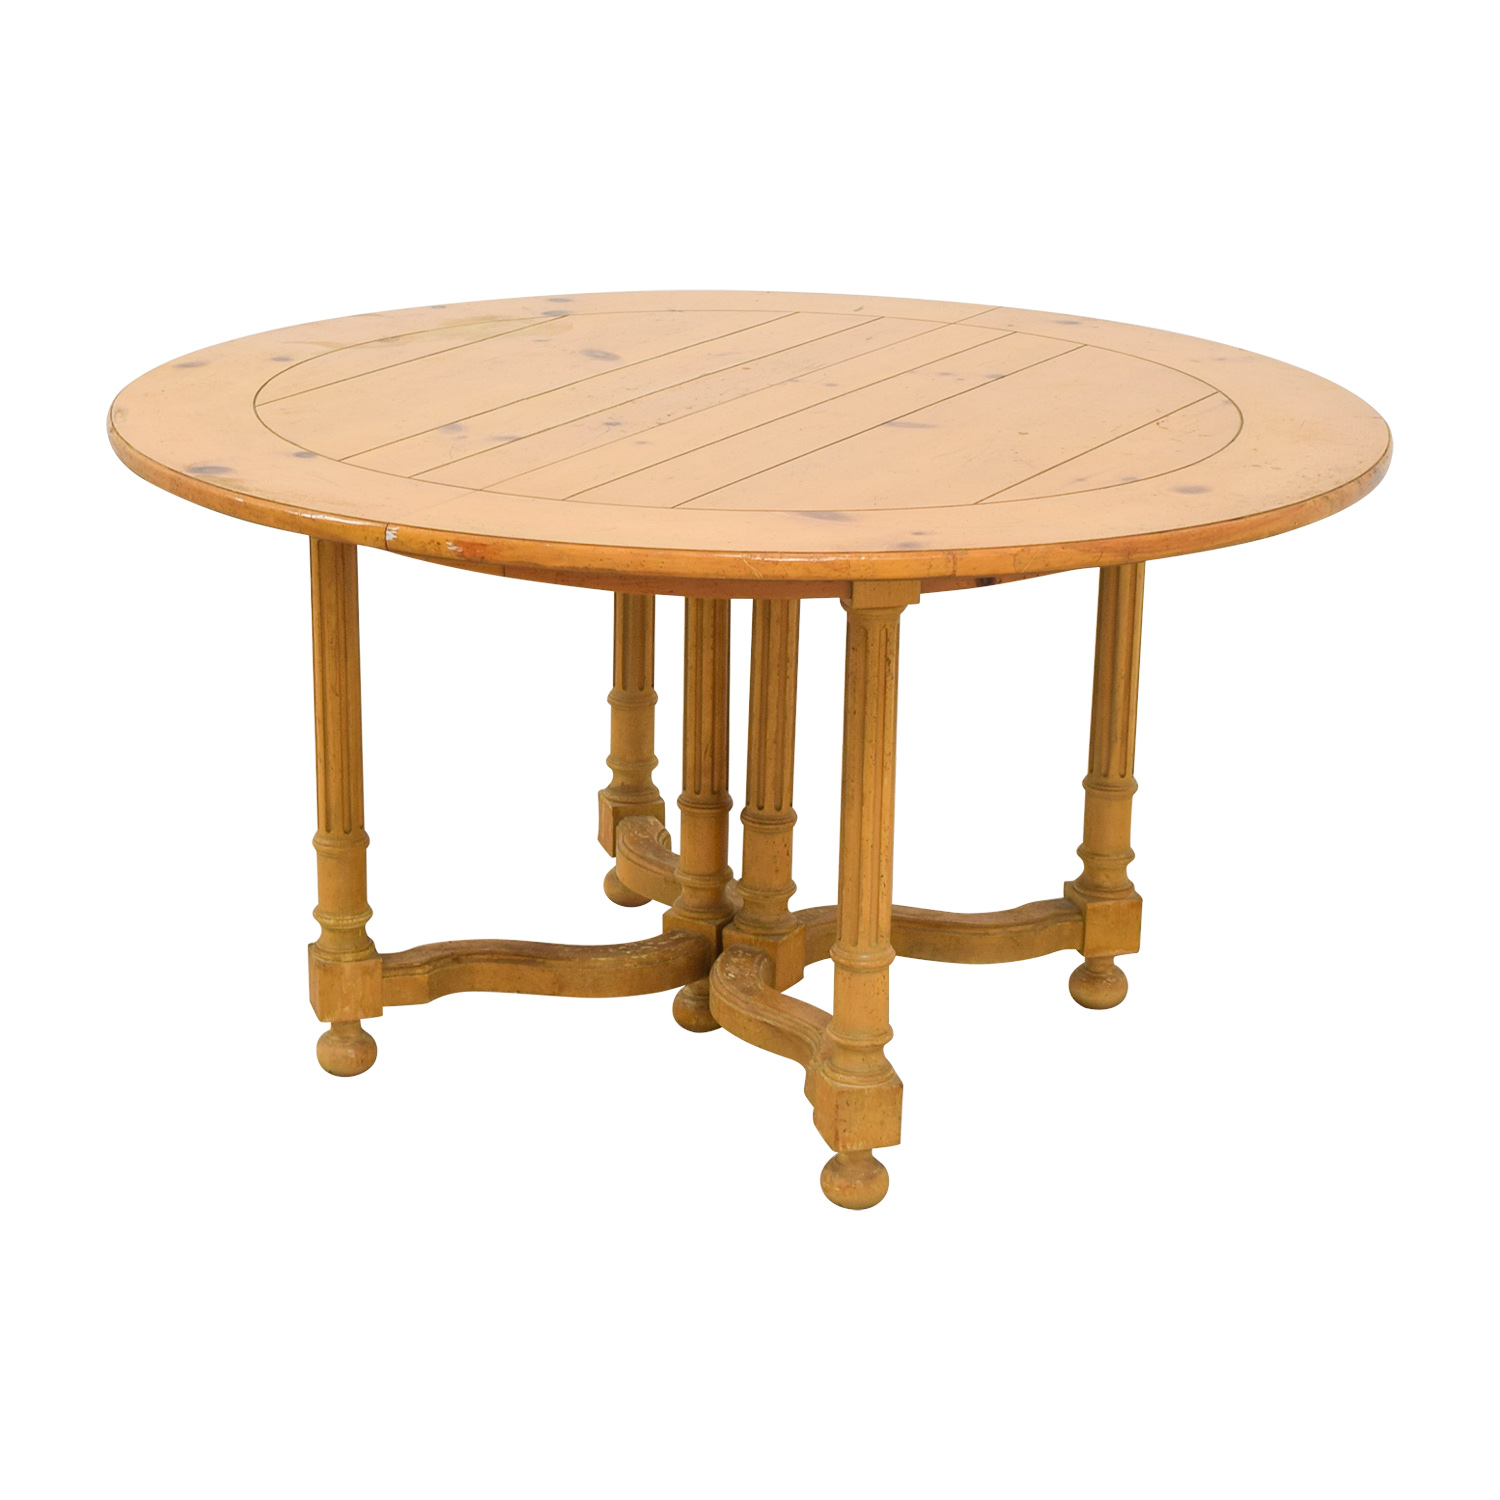 buy Milling Road Natural Round Table with Leaf Milling Road